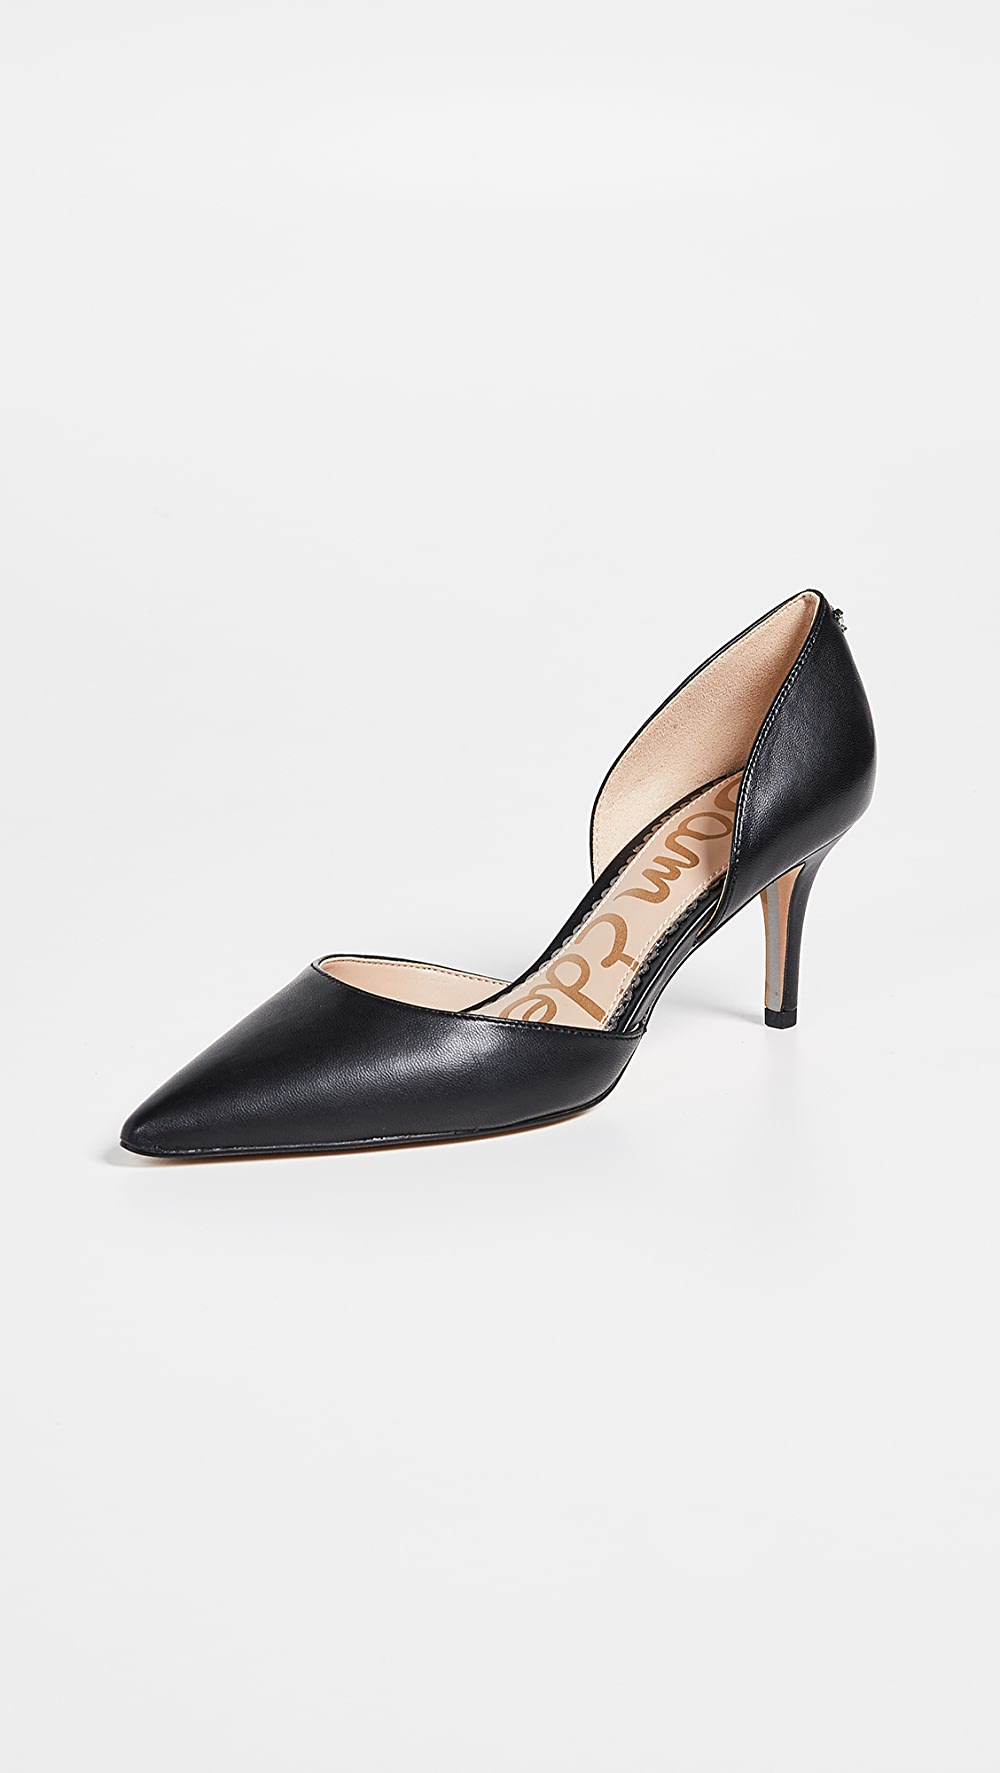 Amiable Sam Edelman - Jaina D'orsay Pumps Do You Want To Buy Some Chinese Native Produce?